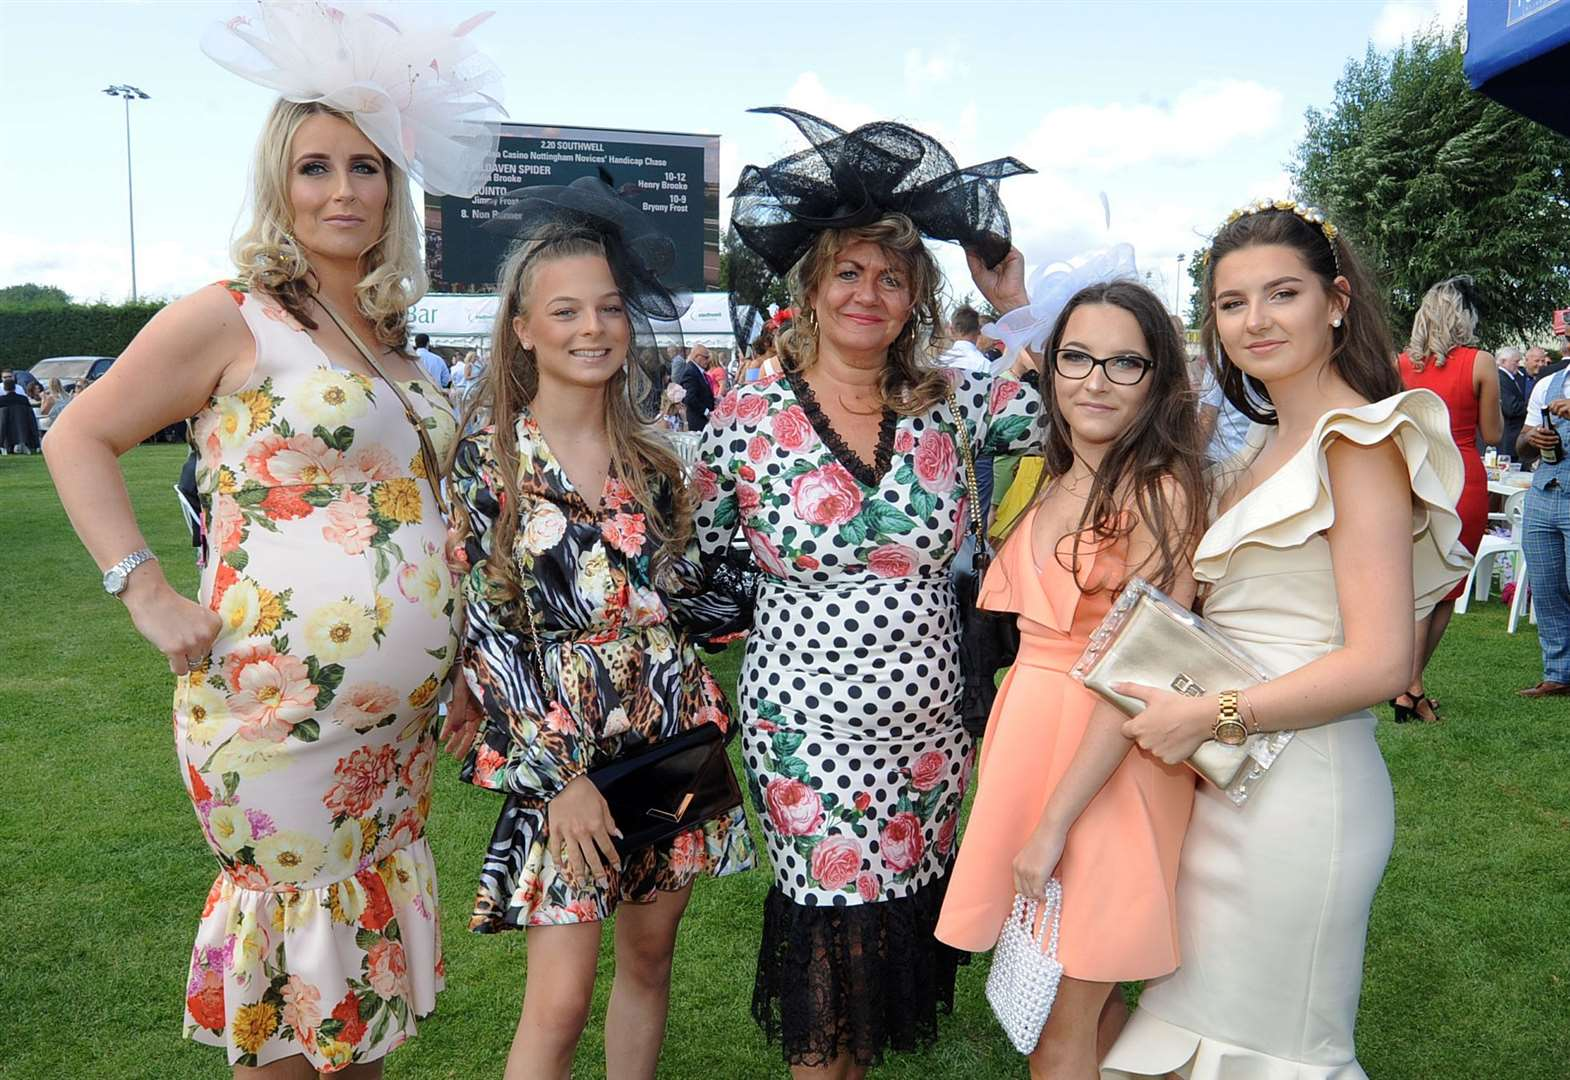 Families all looking fabulous at the races